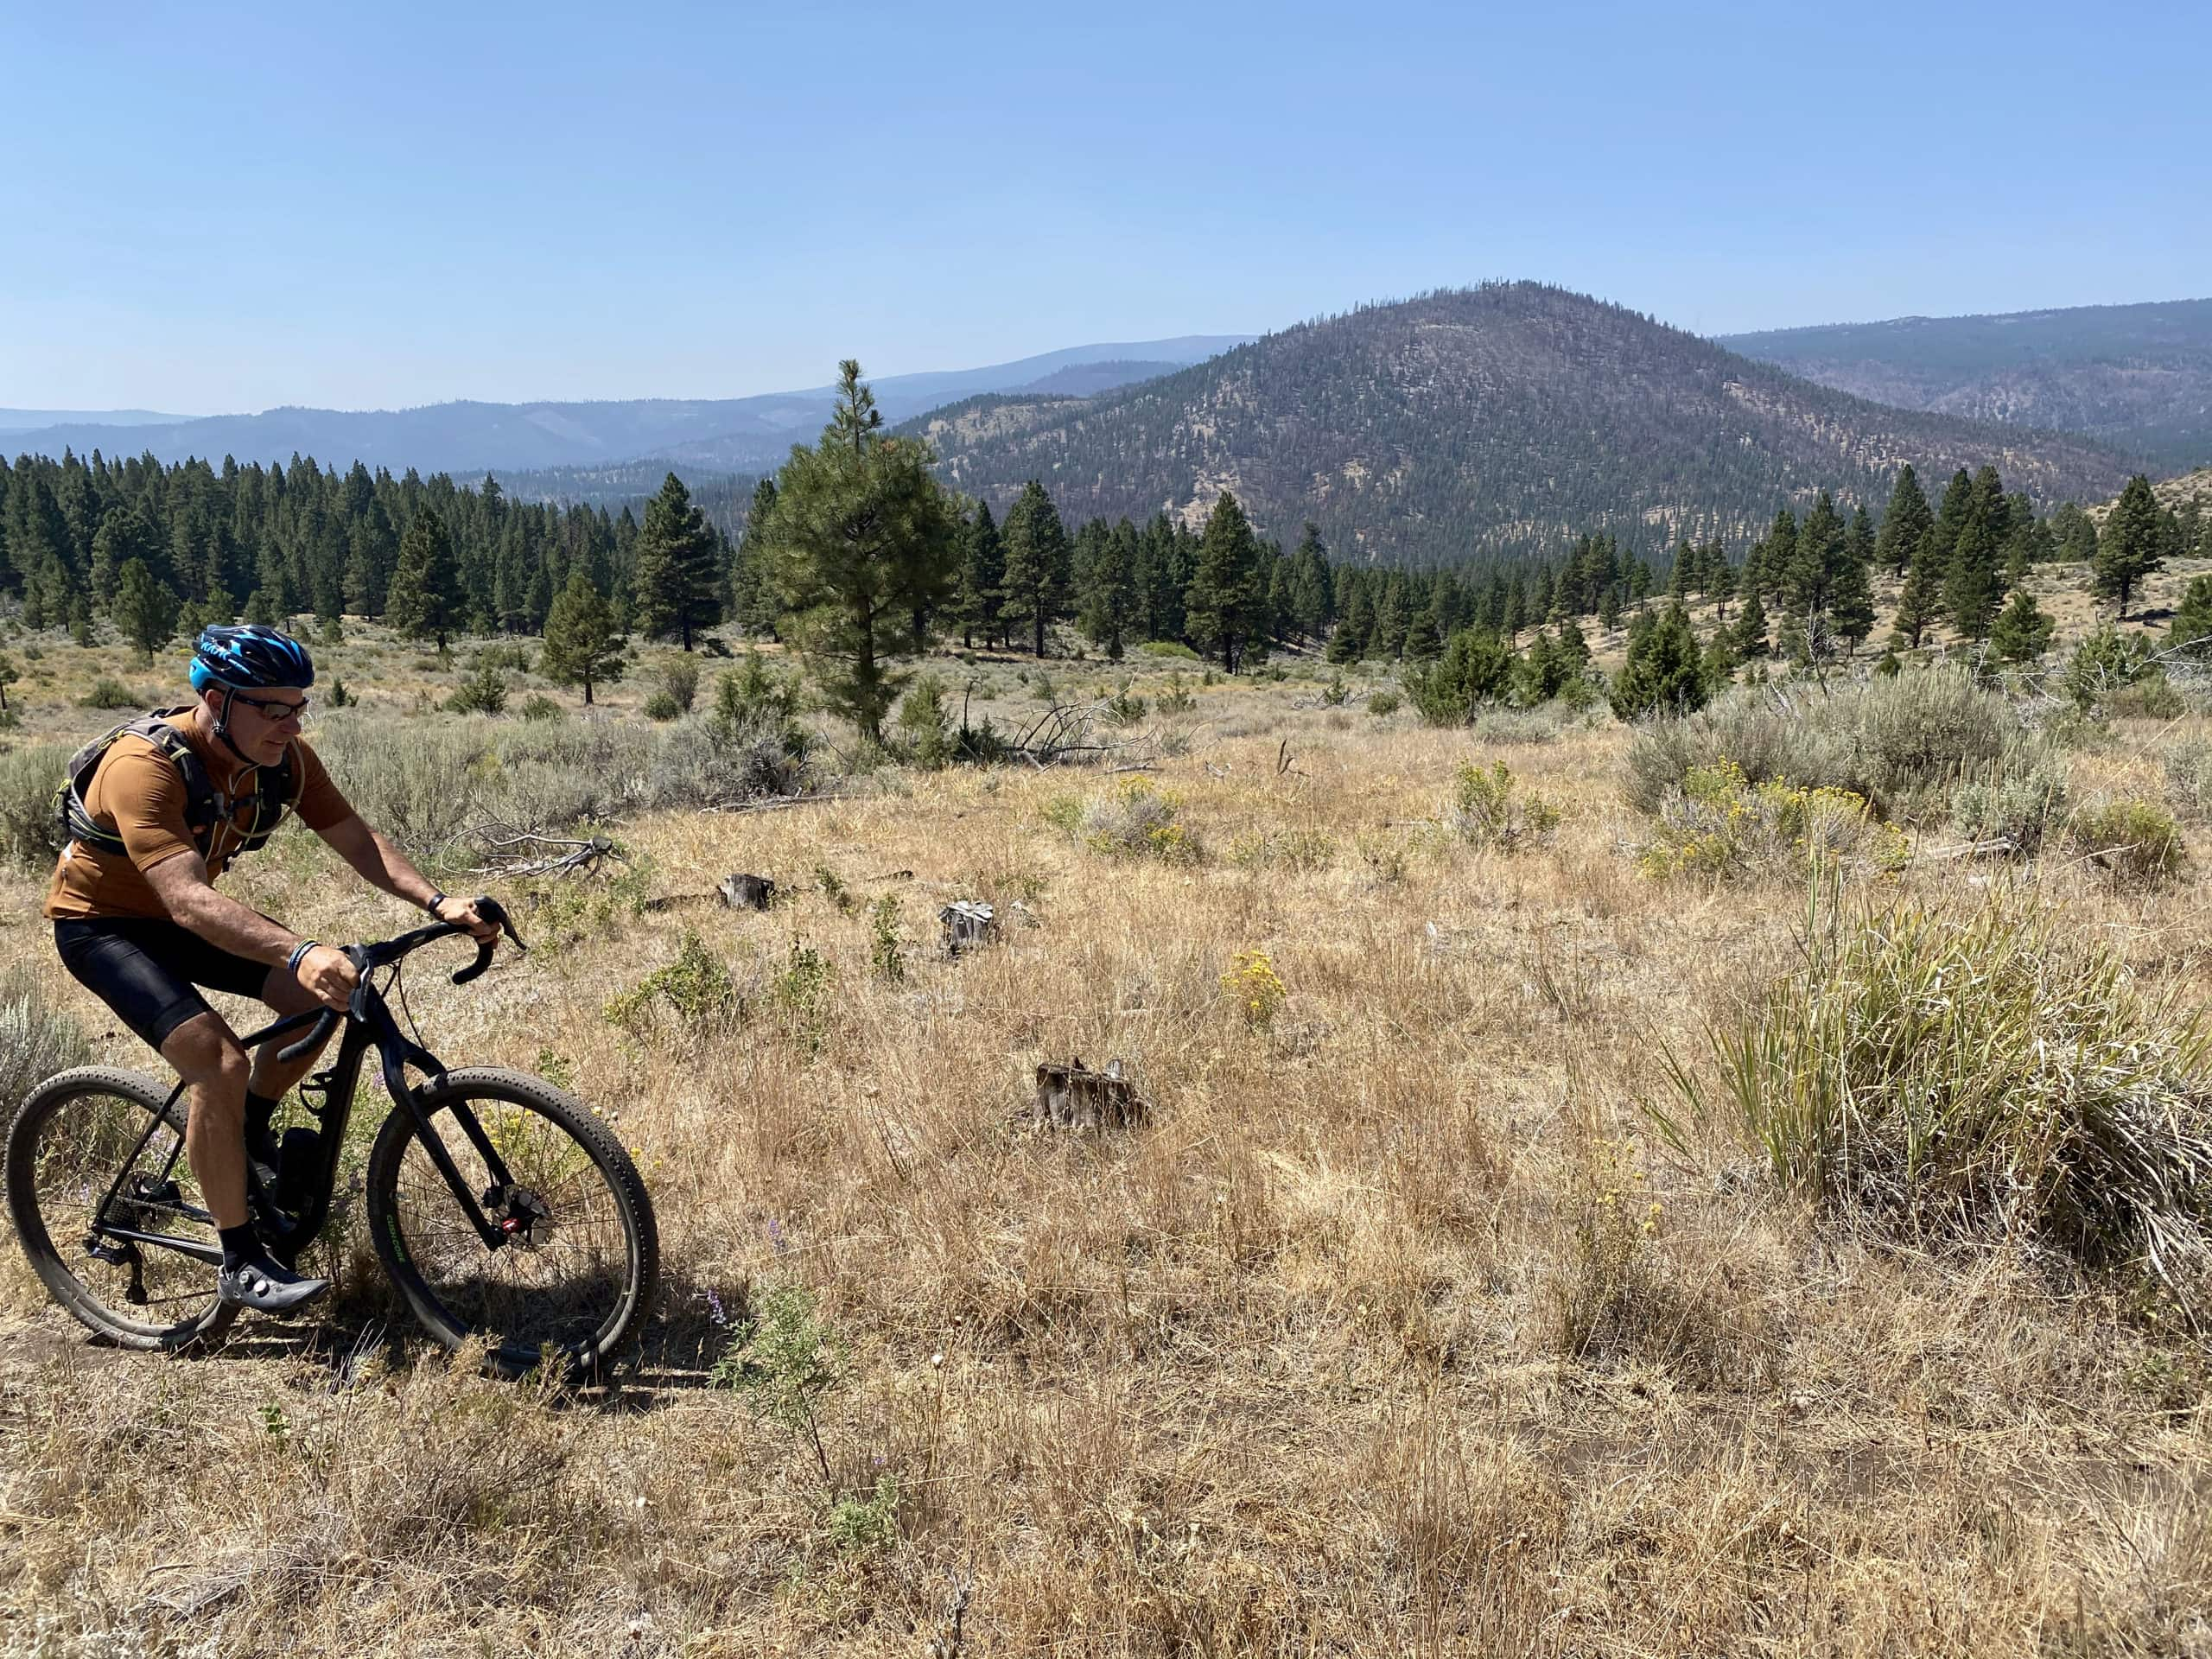 Cyclist riding the open hillsides on the Oregon Timber Trail after Cat Canyon,